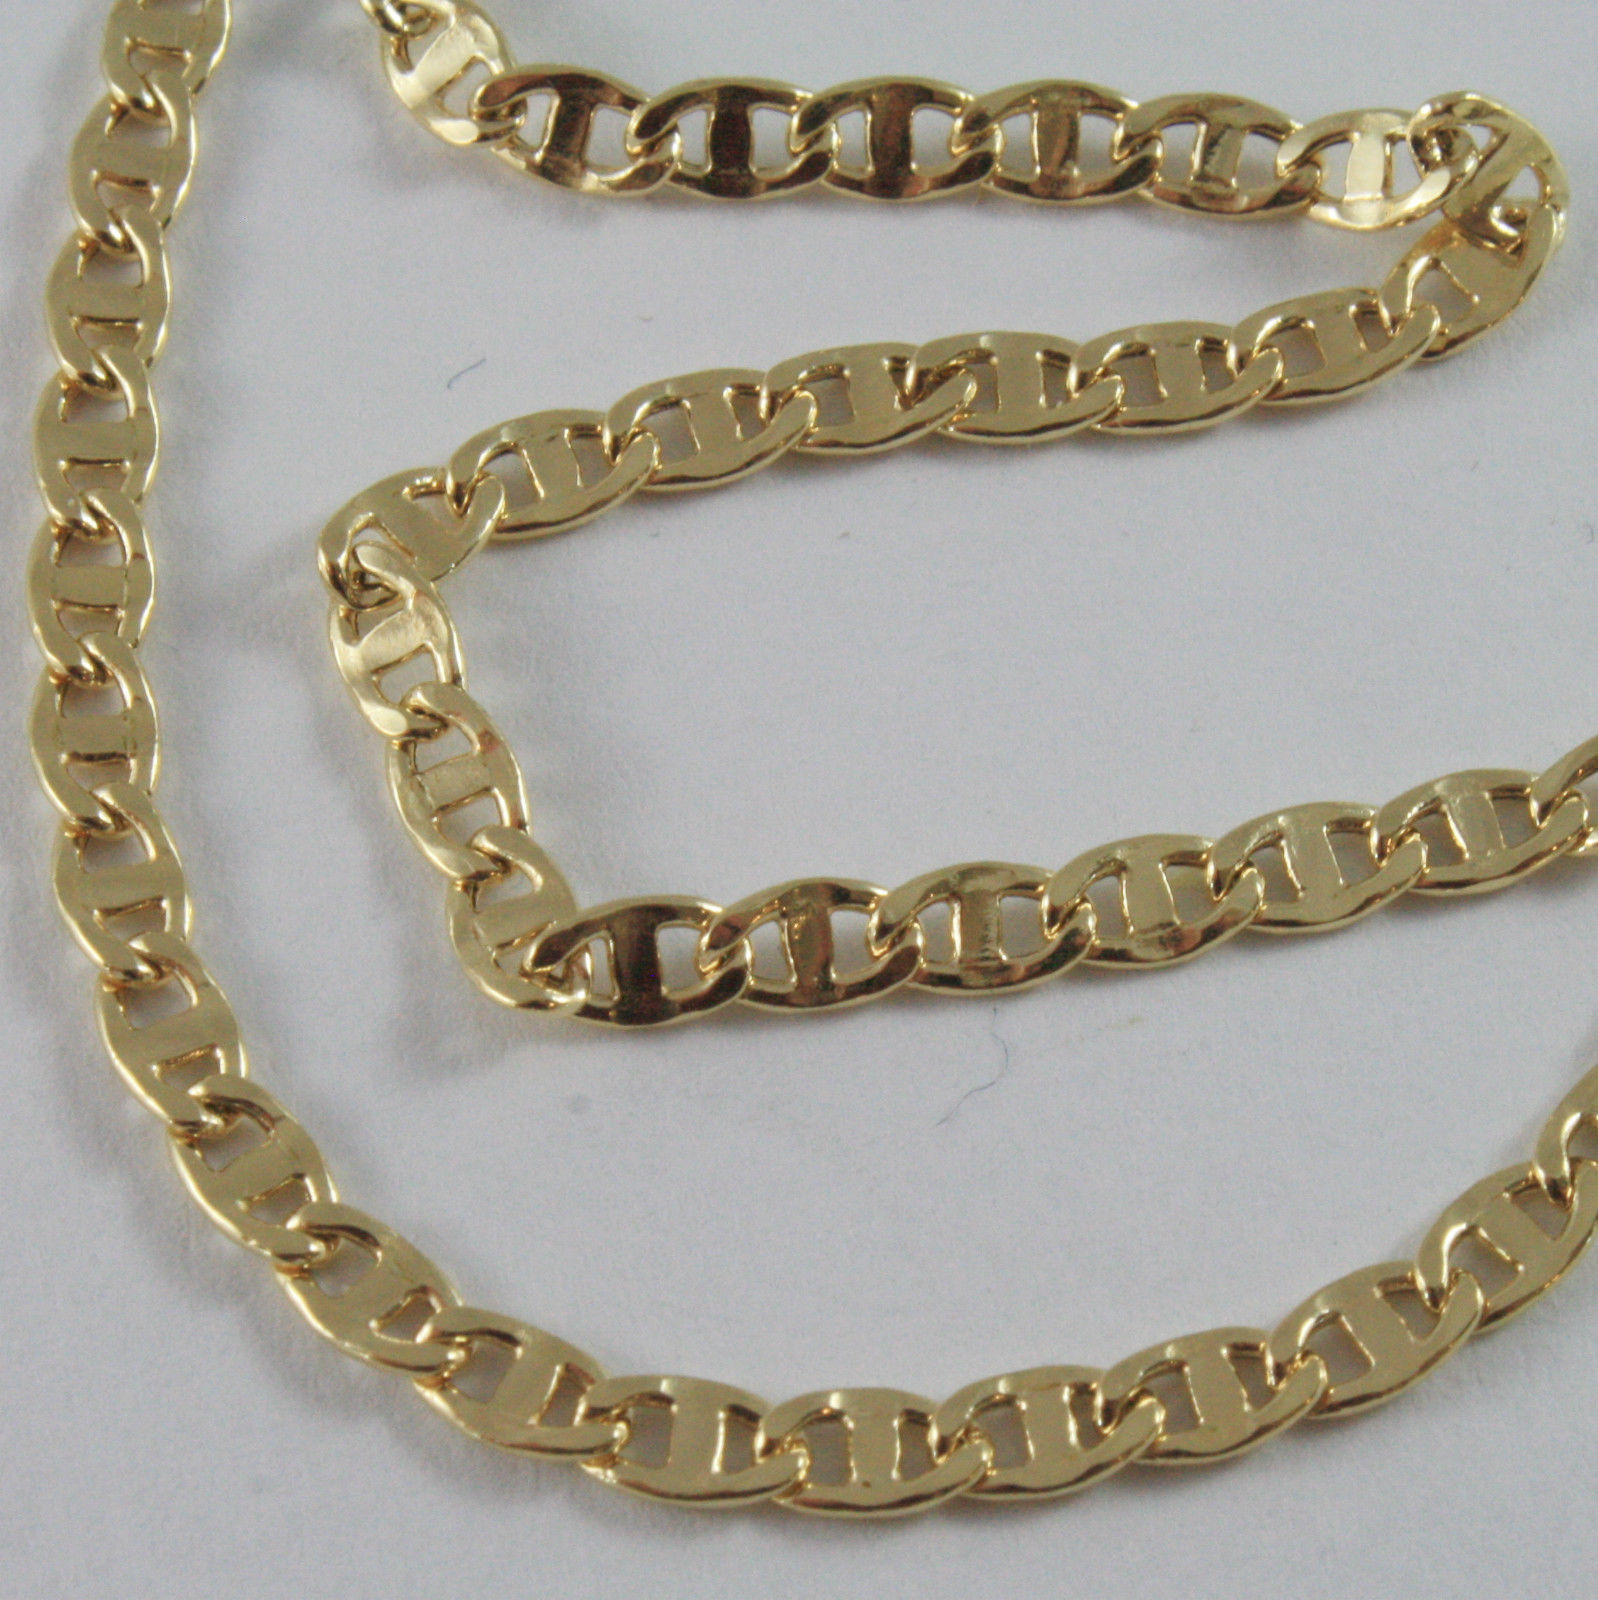 18K GOLD YELLOW CHAIN, SAILORS NAVY MARINER, FINELY WORKED, SHINY, MADE IN ITALY